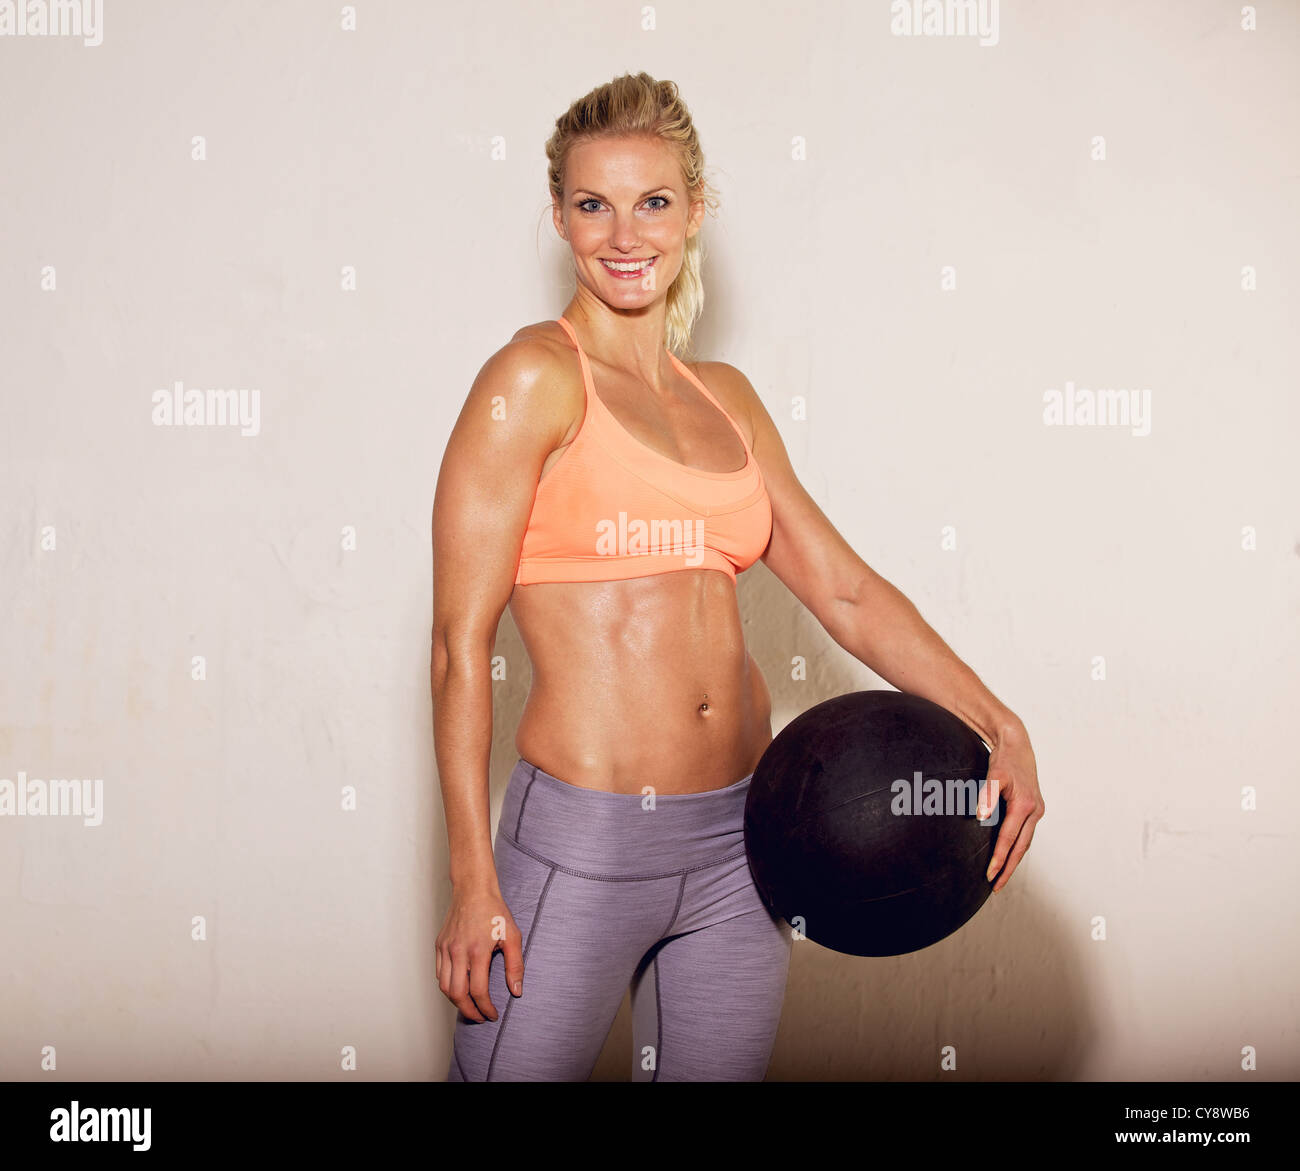 Beautiful pilates instructor holding a fitness ball - Stock Image